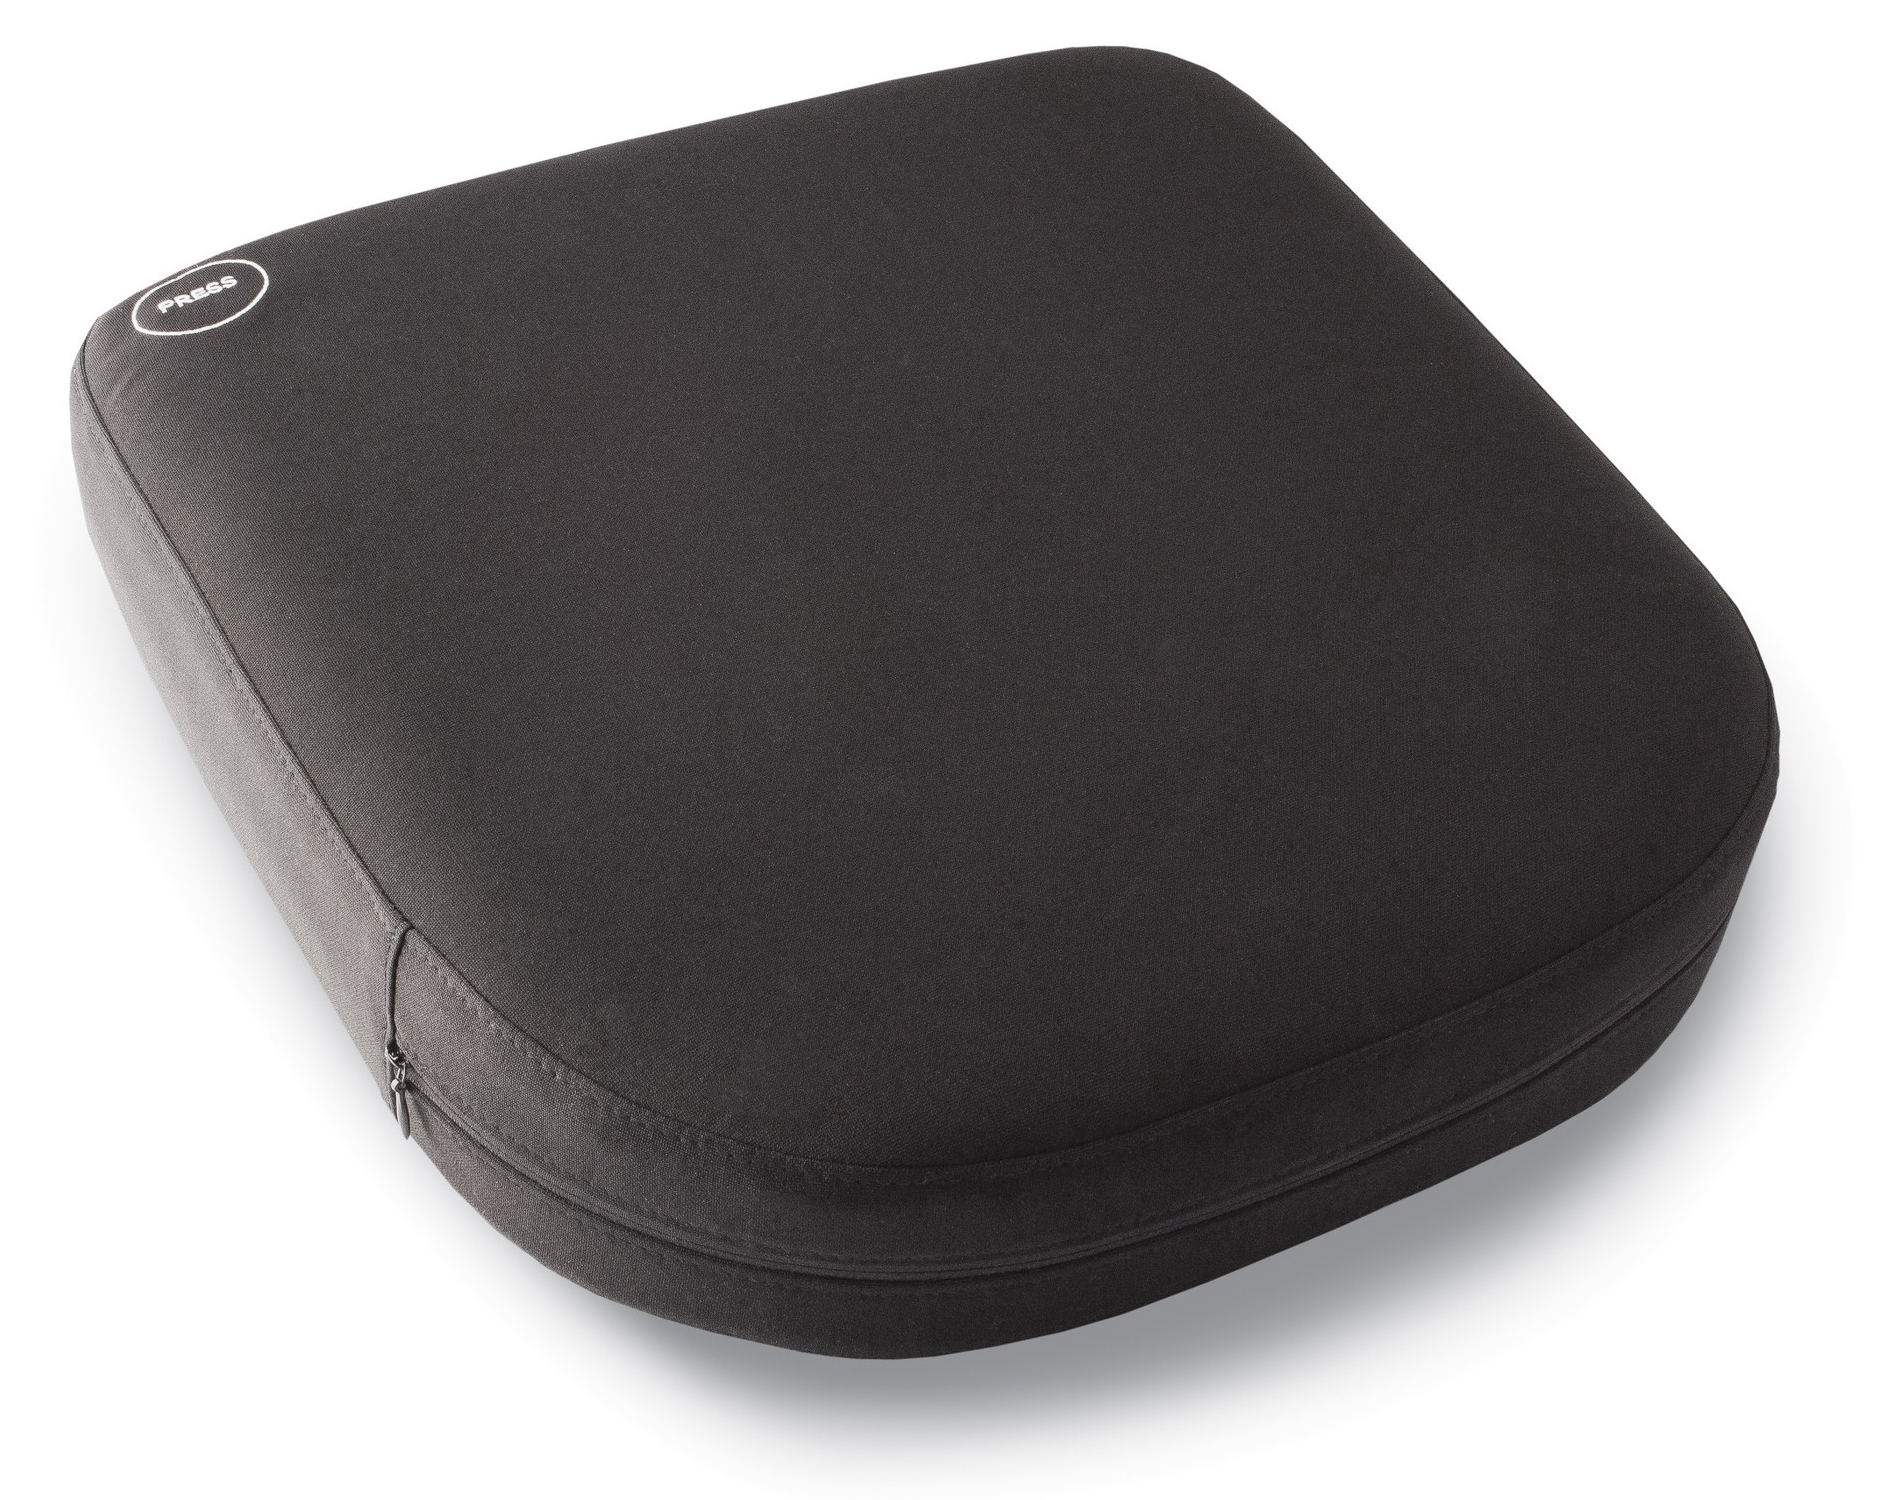 supportech adjustable memory foam seat cushion by prestige. Black Bedroom Furniture Sets. Home Design Ideas